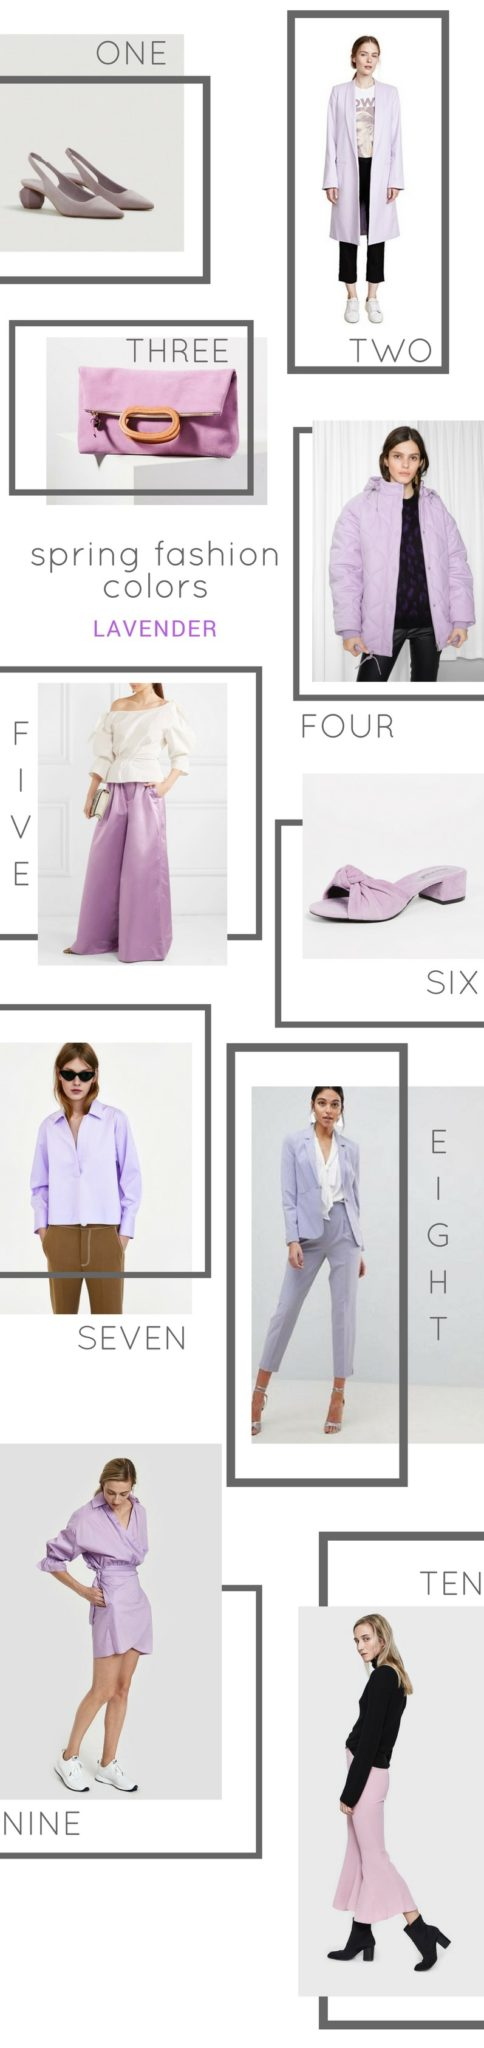 2018 spring fashion colors